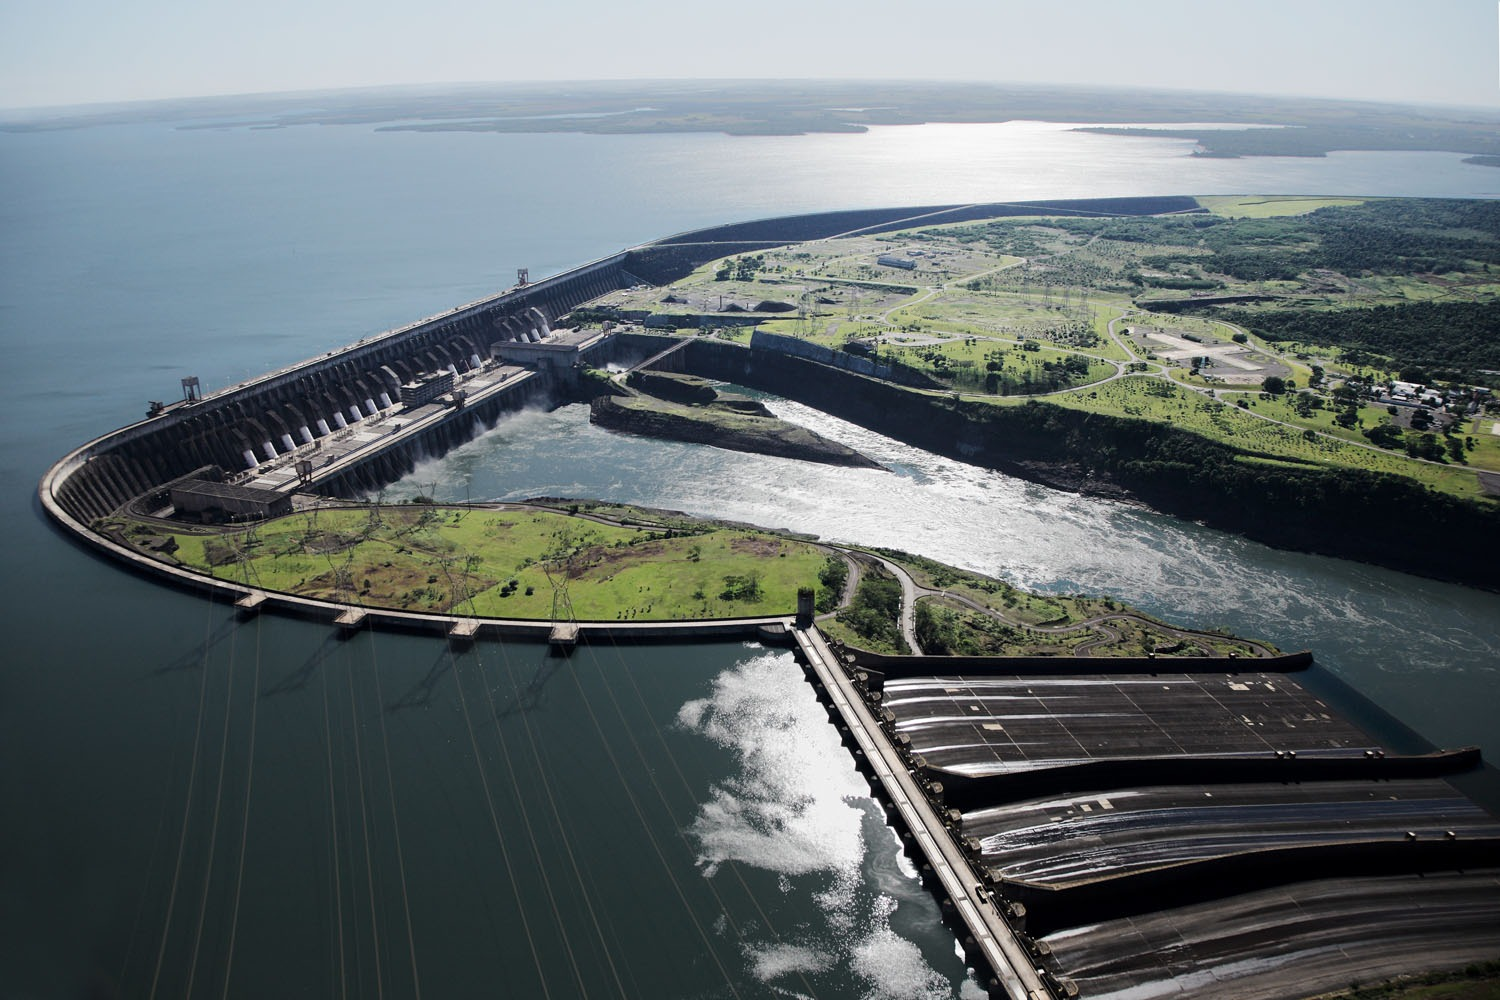 itaipu dam The itaipu dam in paraguay is one of the seven engineering wonders of the world it was also the largest of its kind in the world until recently.